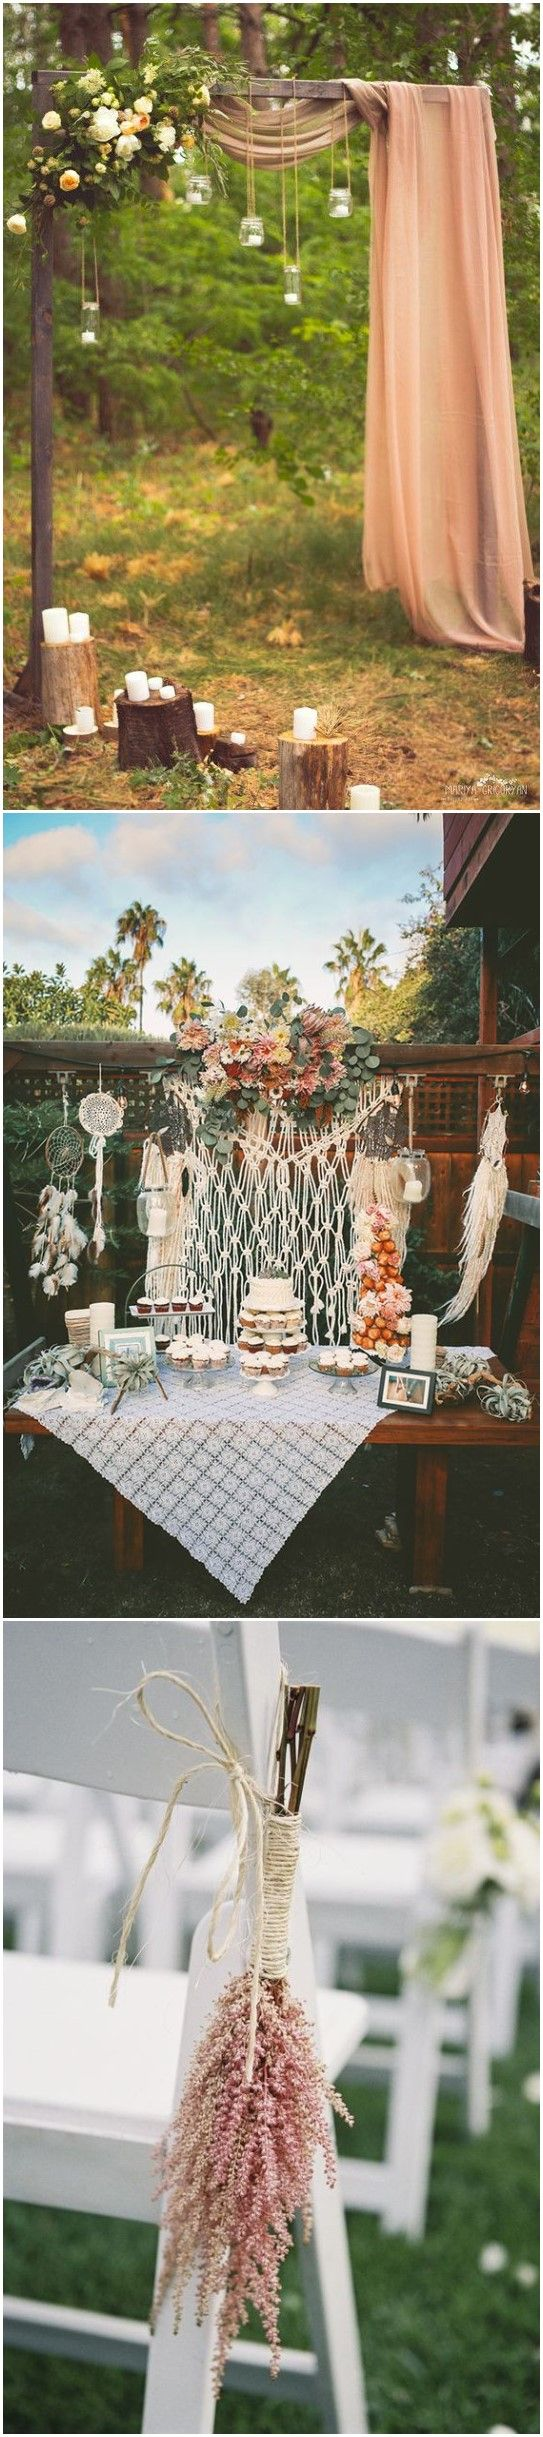 gorgeous boho wedding décor ideas on pinterest boho weddings